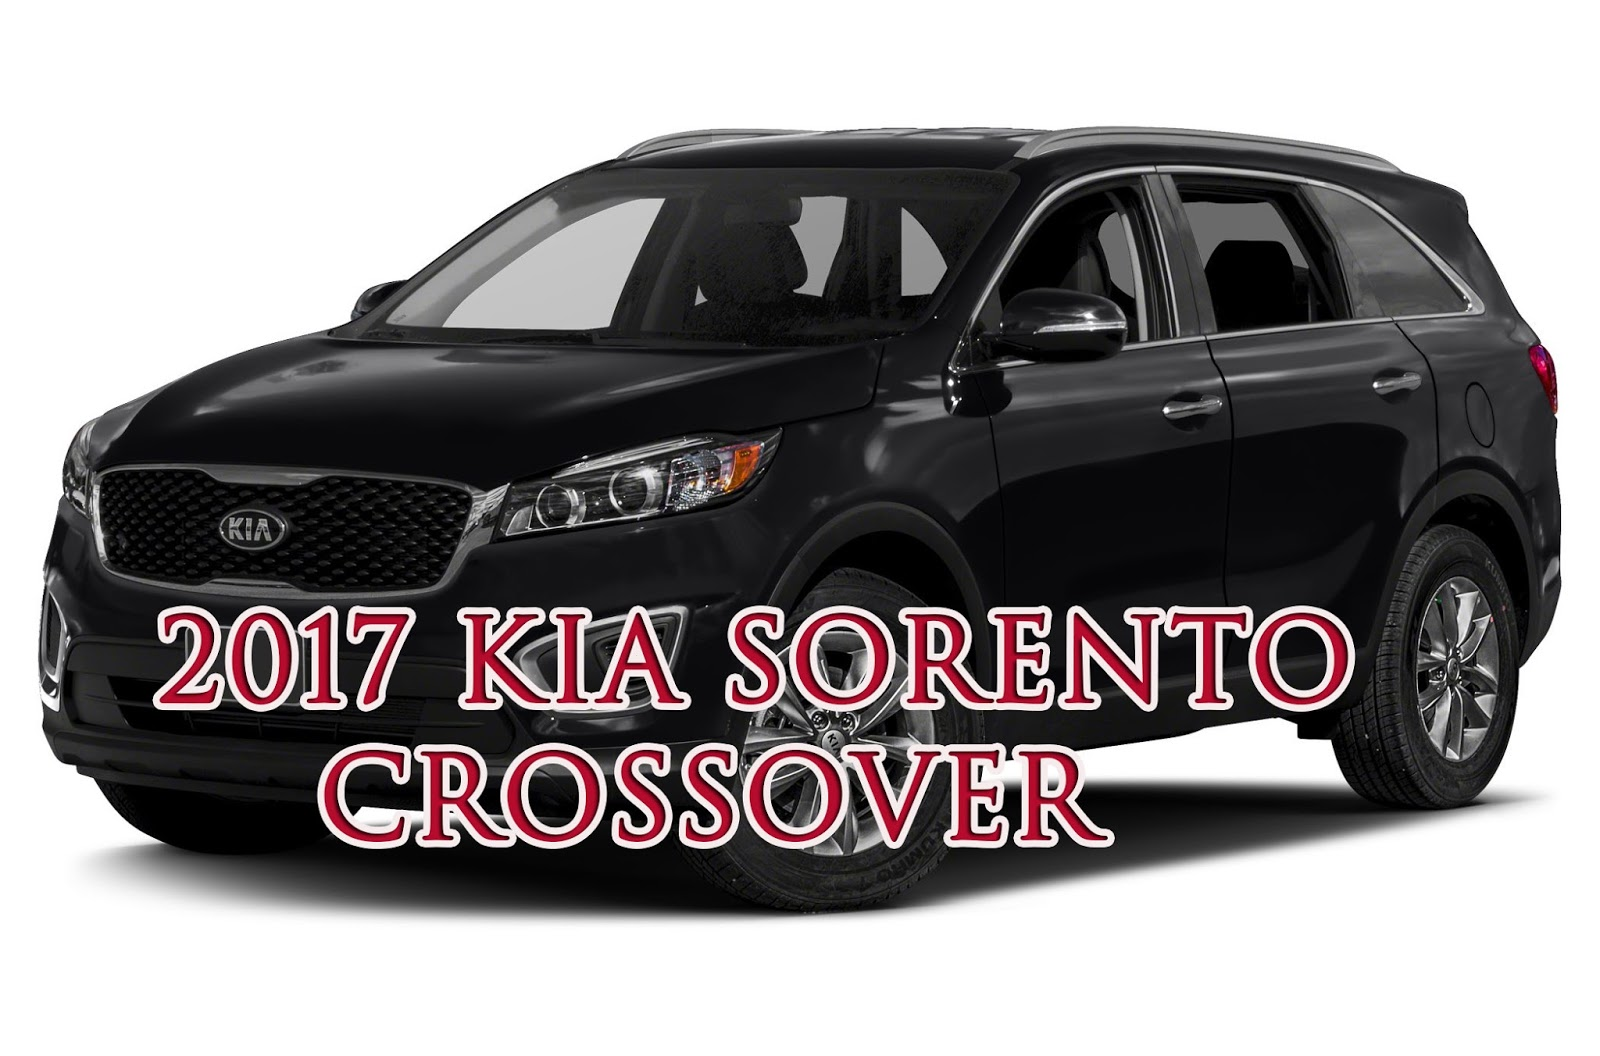 2017 kia sorento crossover price and reviews otomotif news. Black Bedroom Furniture Sets. Home Design Ideas